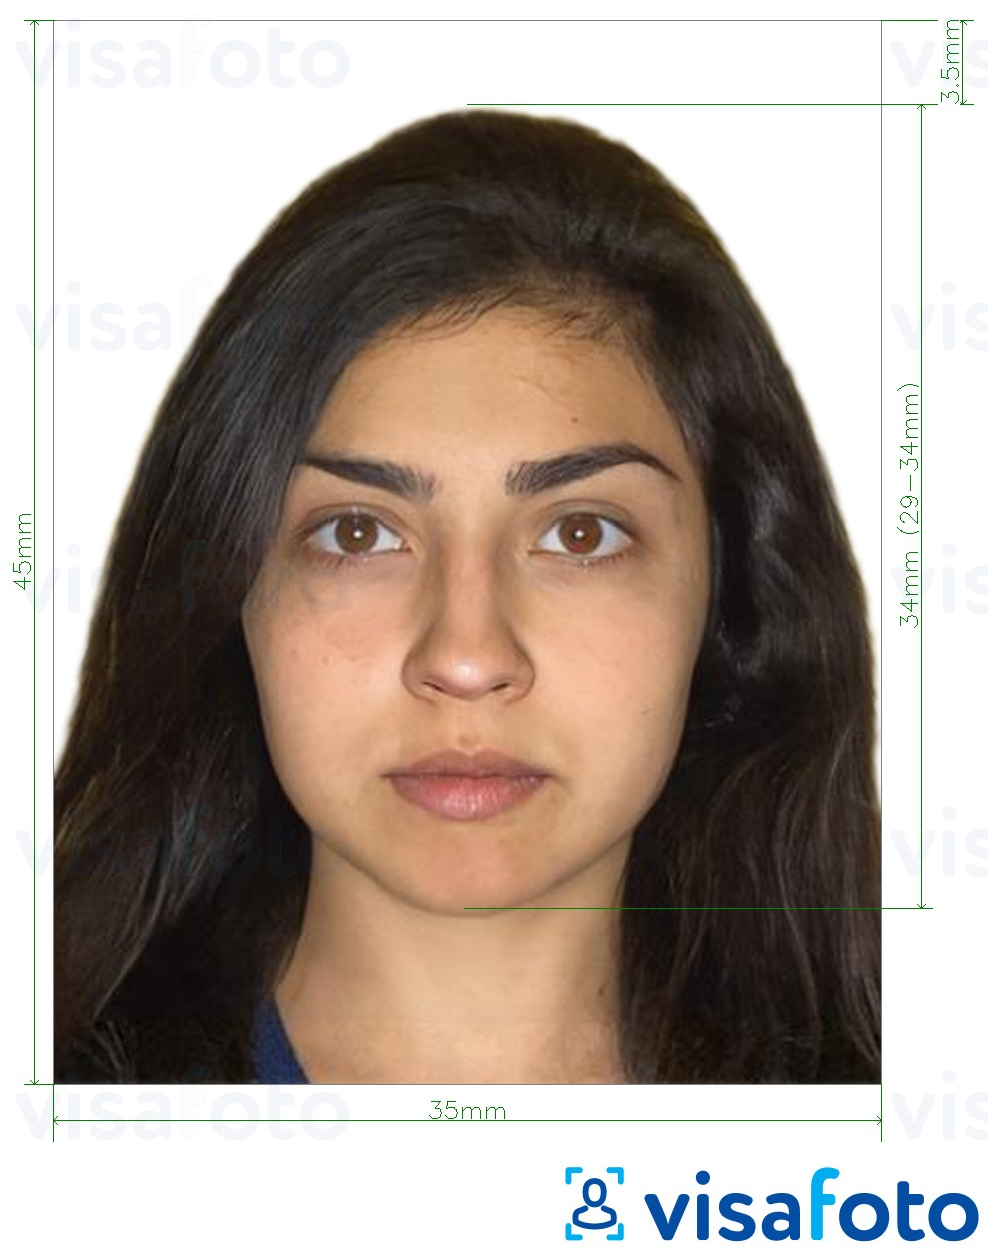 Example of photo for Pakistan National ID card (NADRA, NICOP) 35x45 mm with exact size specification